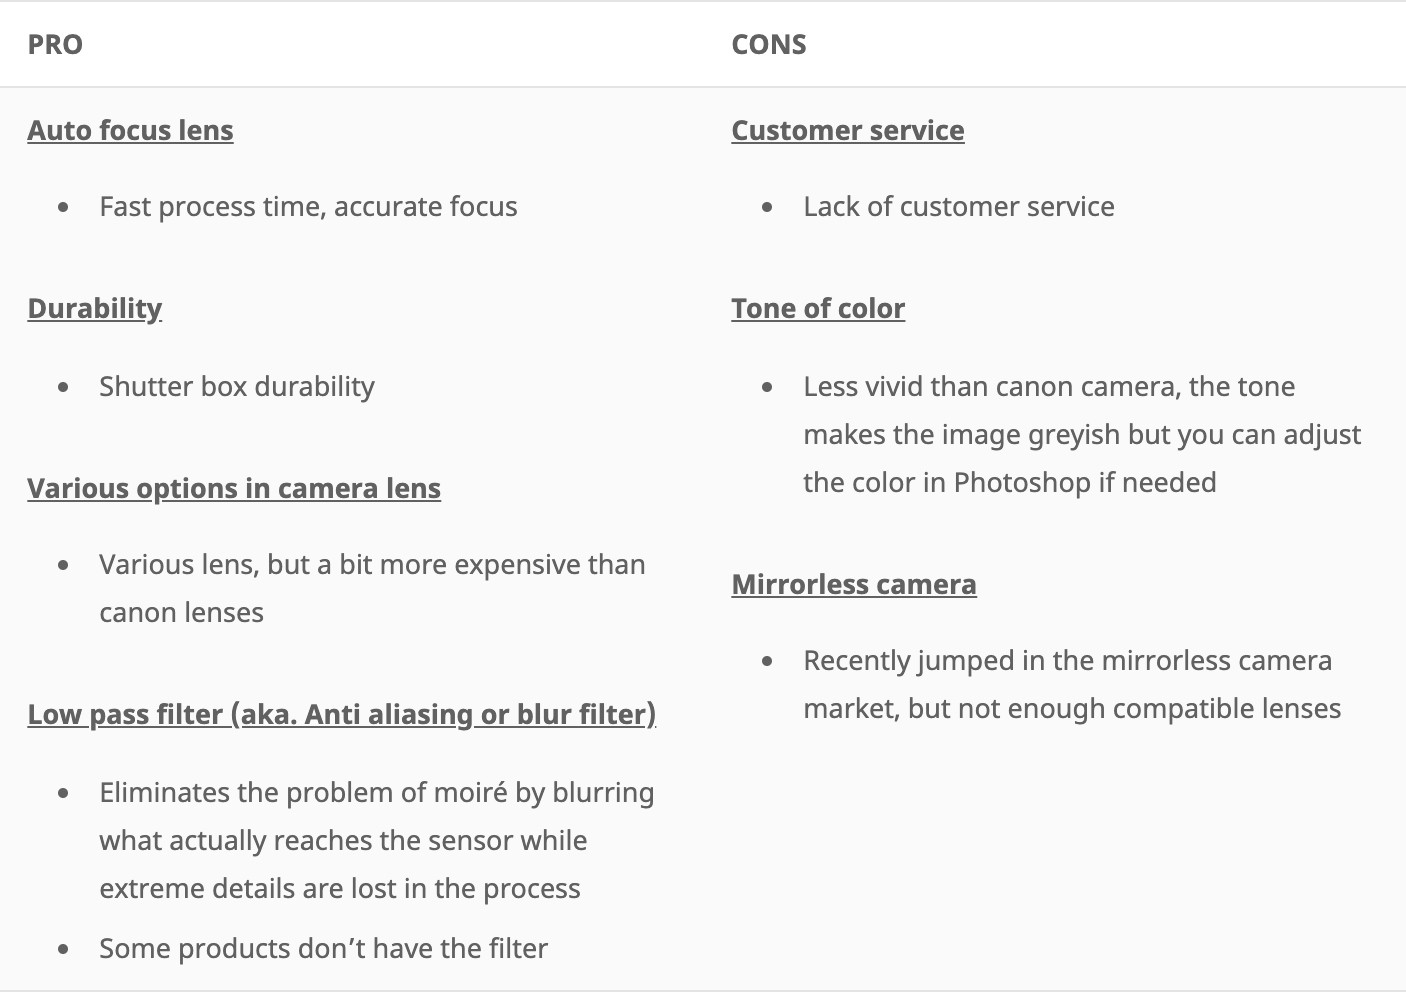 Nikon camera: fast processing time with auto focus lens